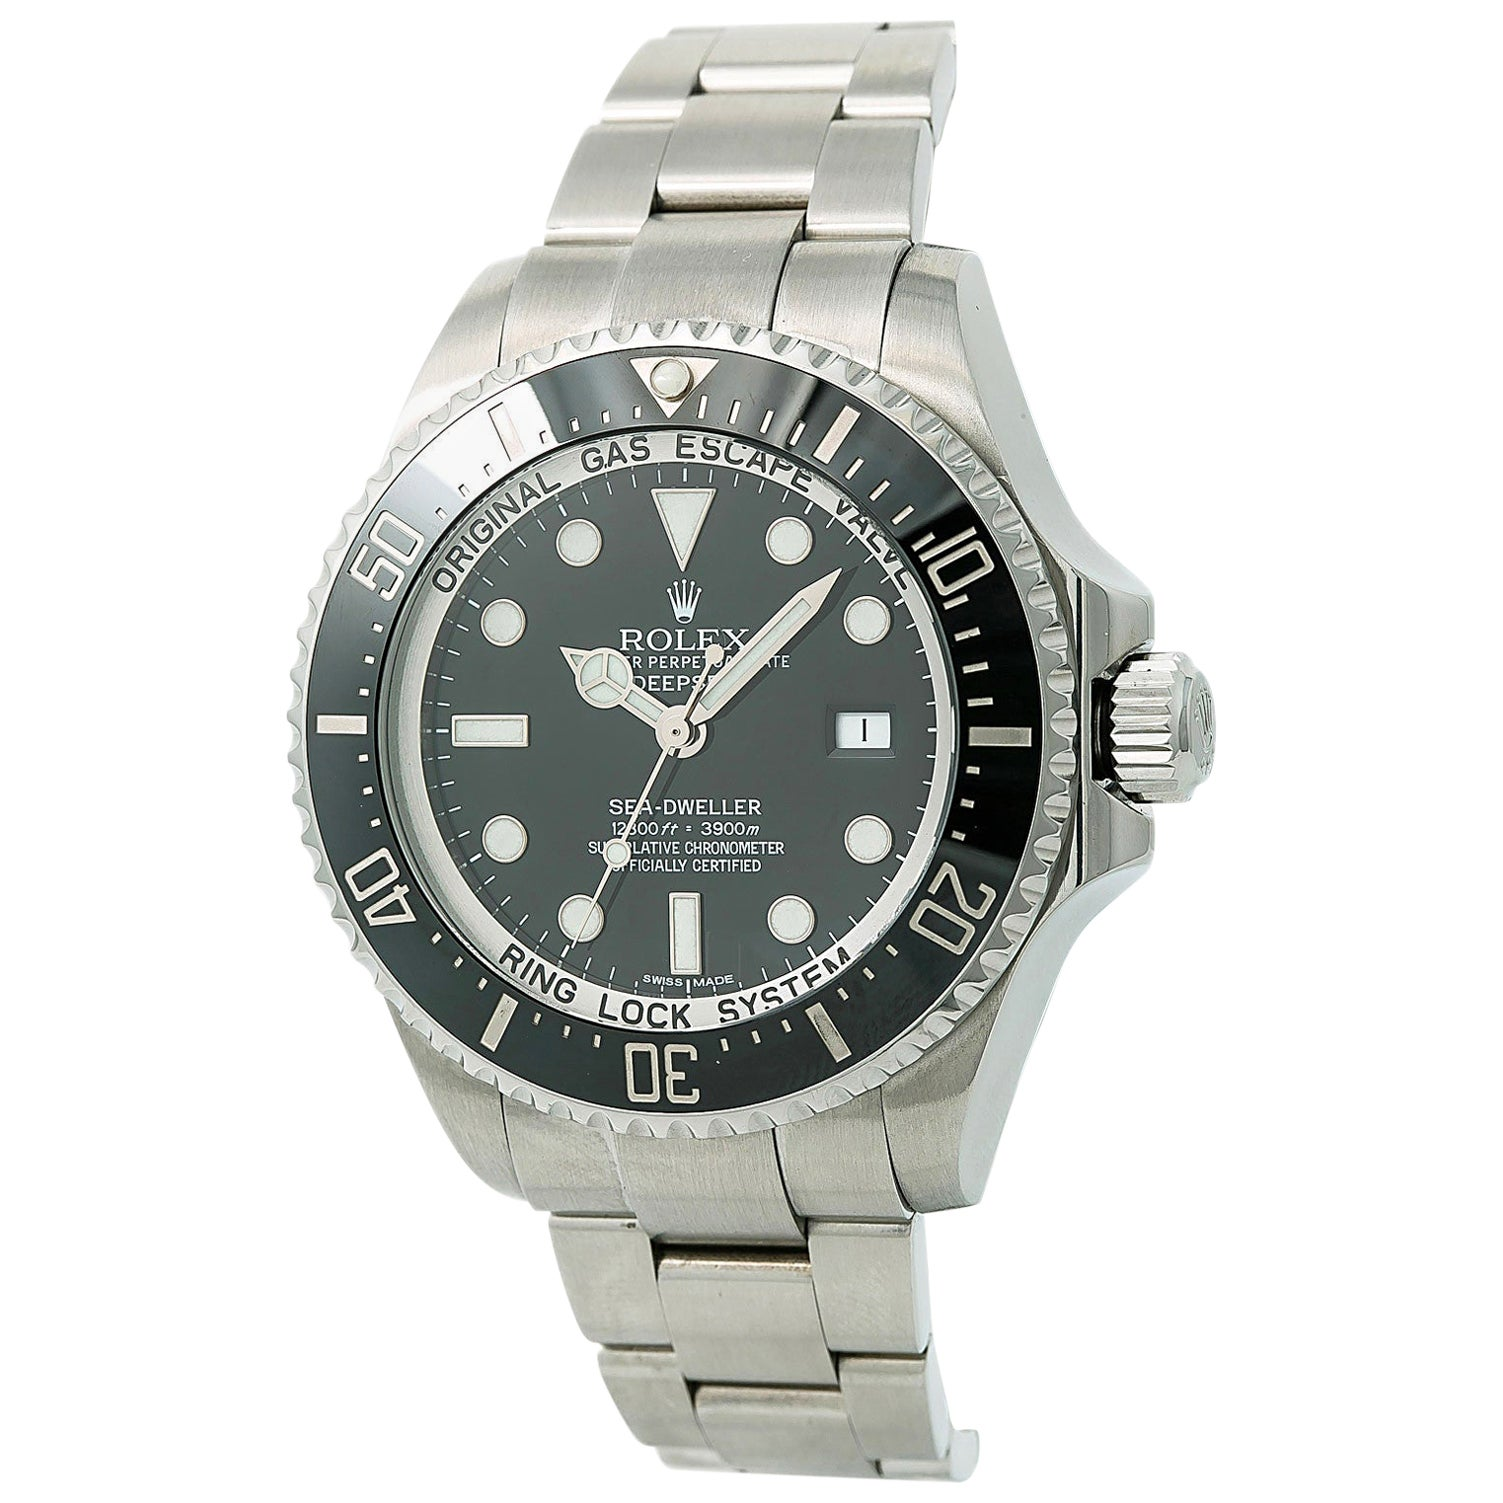 Rolex Sea-Dweller Deepsea 116660 Men's Automatic Watch with B&P, Year 2015